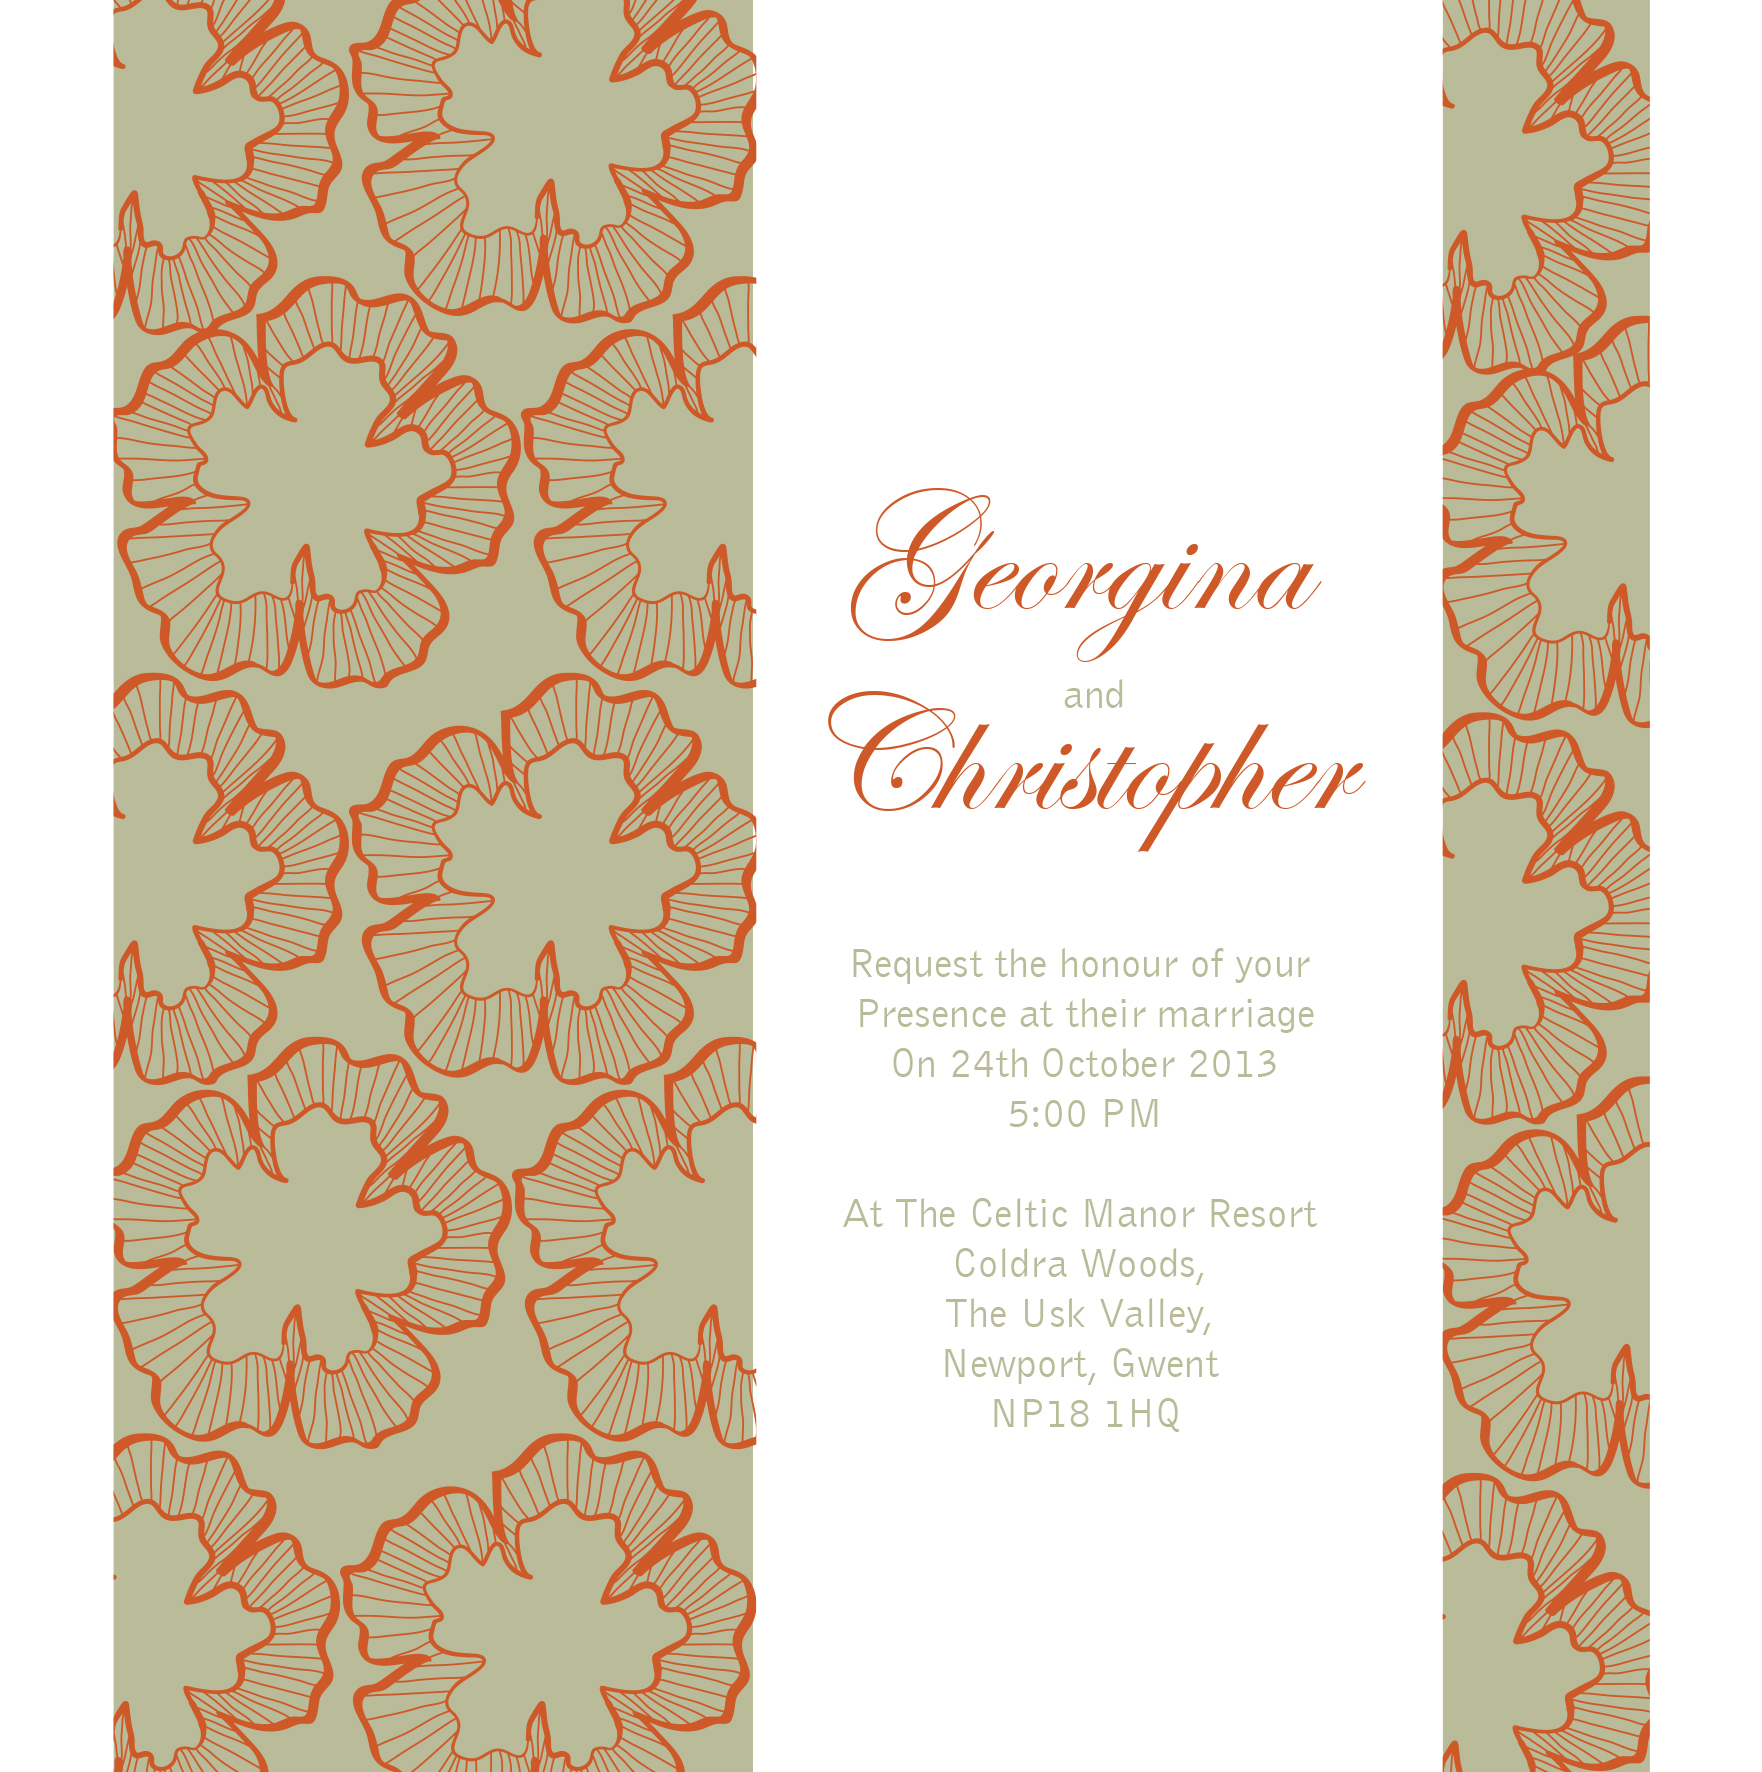 wedding invitation in burnt orange and yellow for Autumn